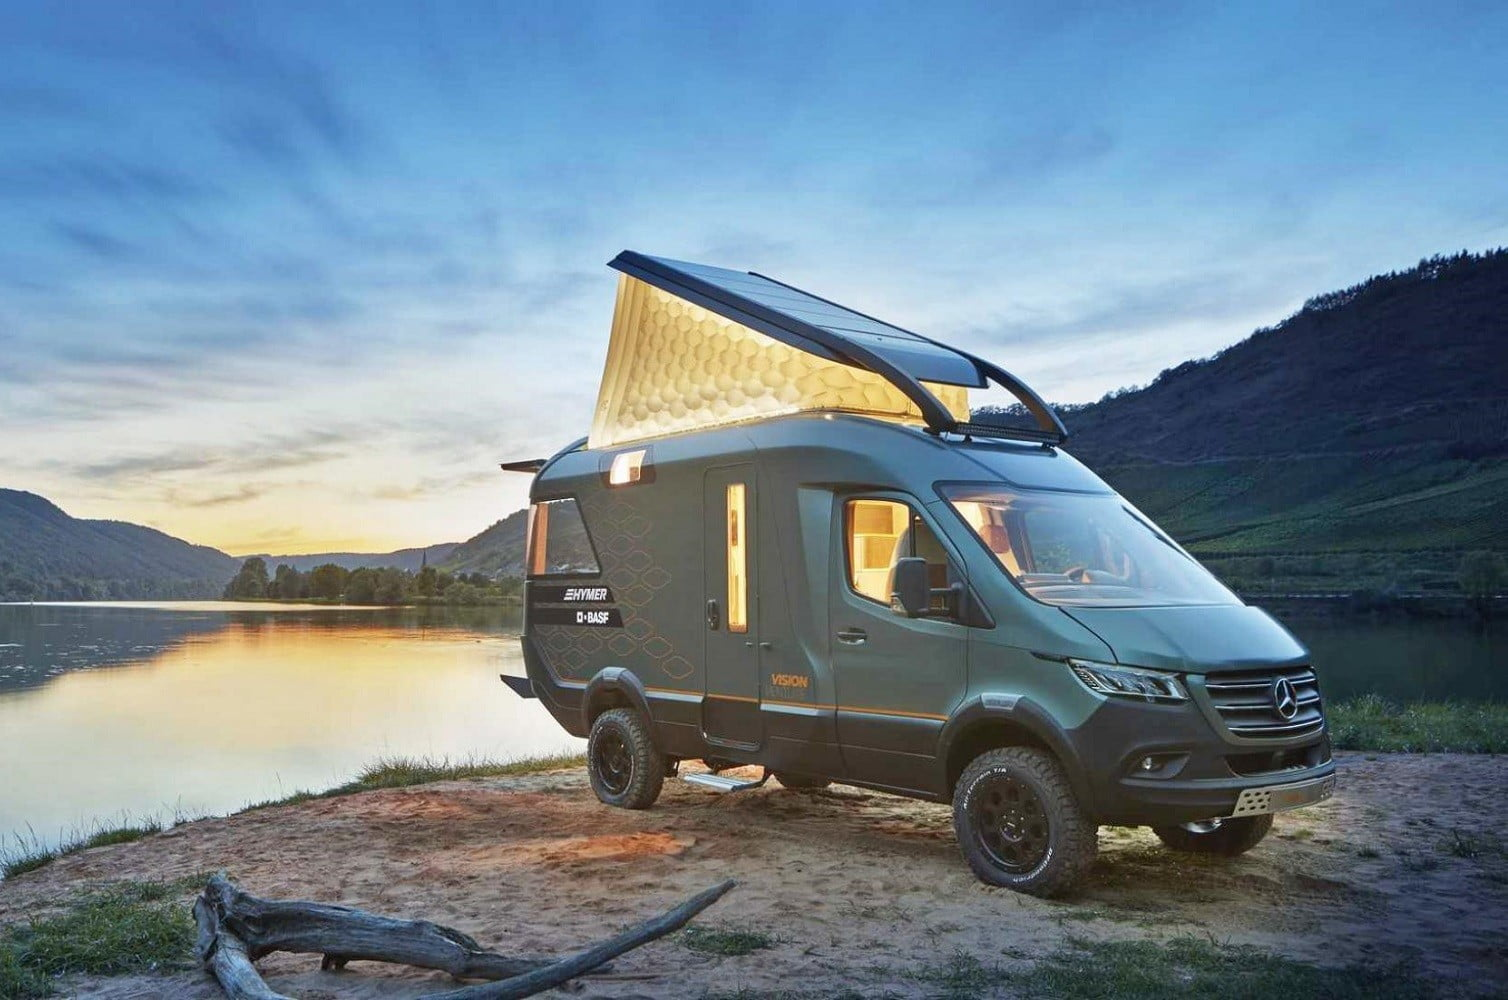 Take a peek at what the adventure-ready camper van of 2025 looks like